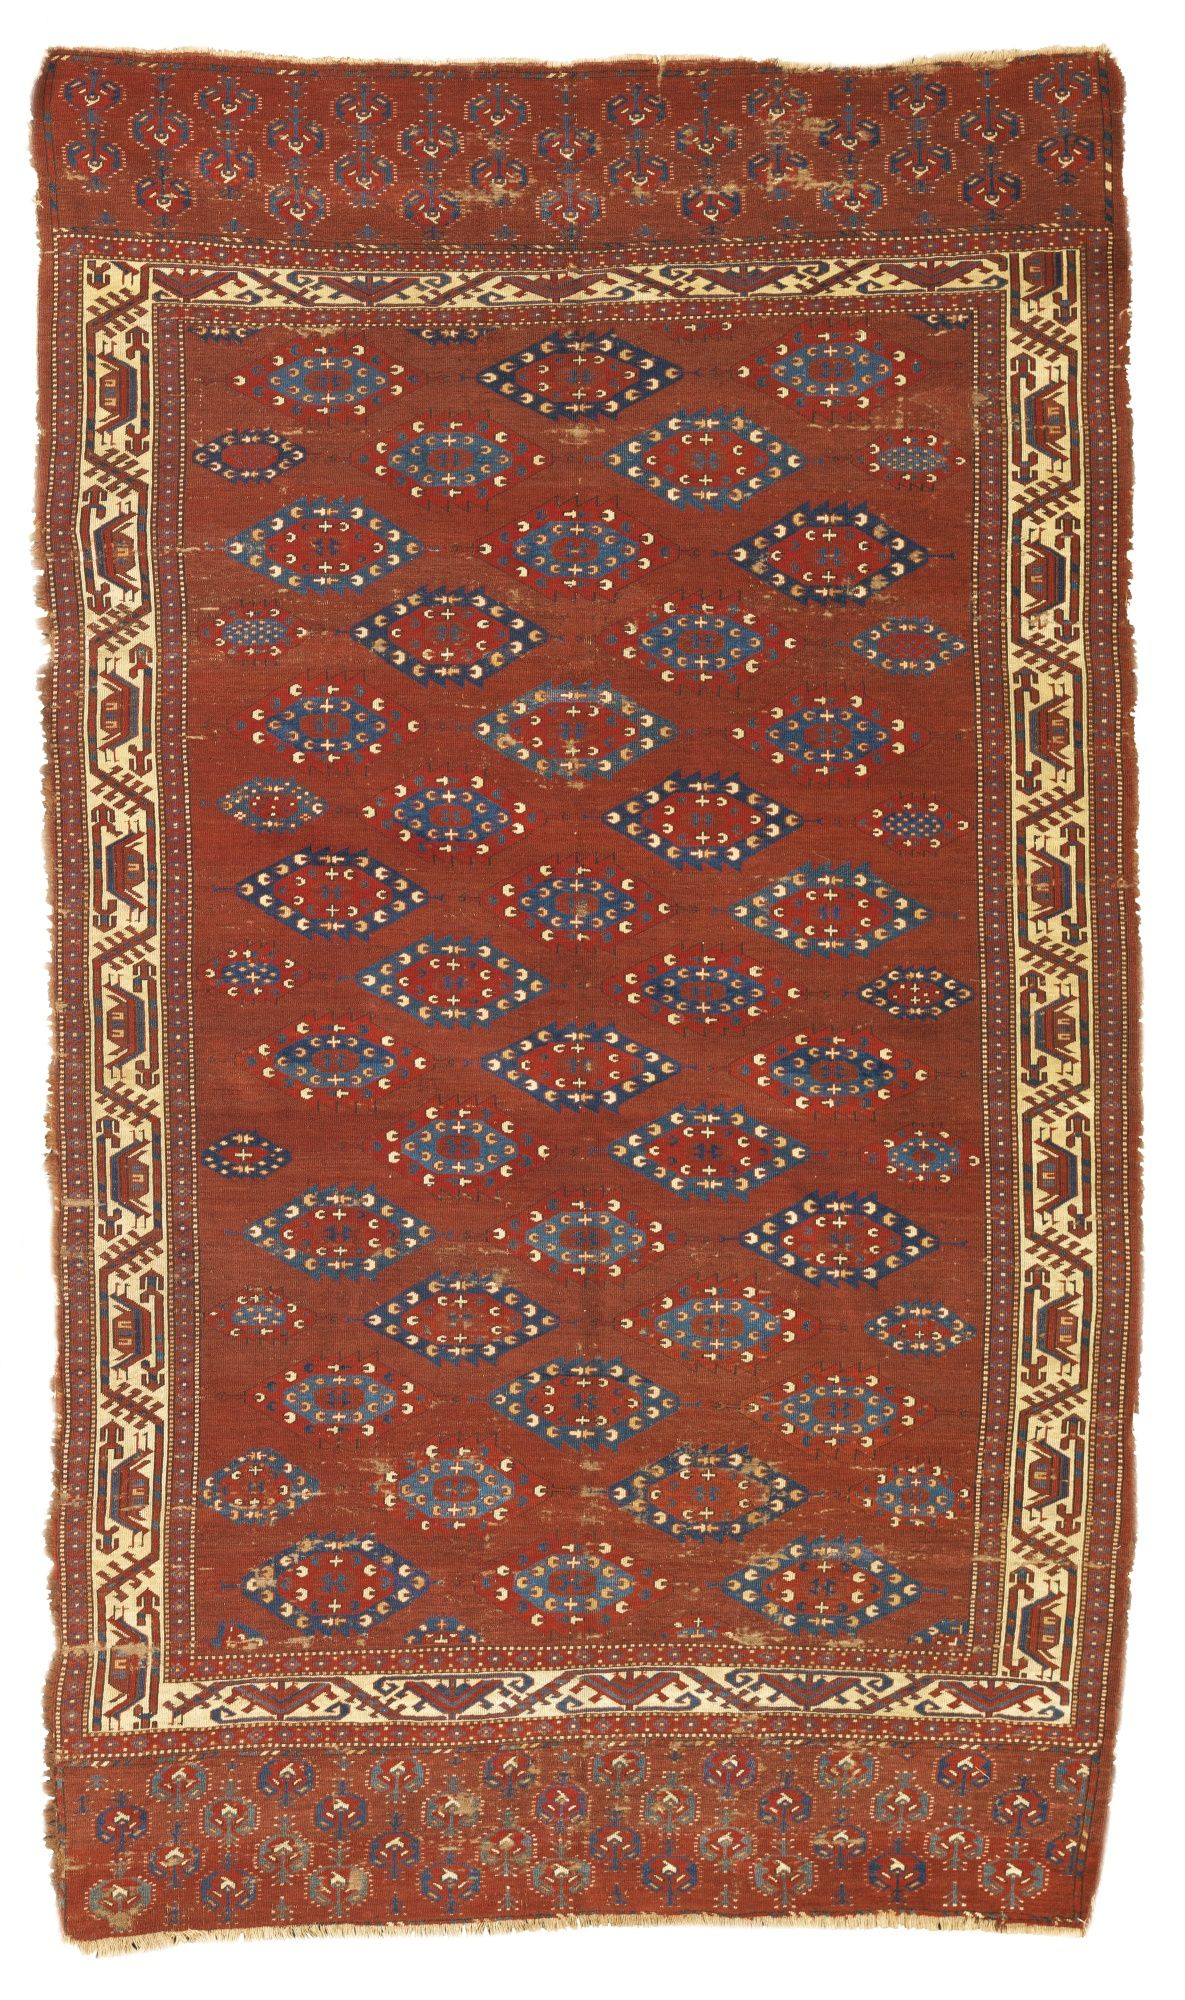 Persischer Vintage Teppich Carpet Sotheby 39s N09104lot76m7nen Tribal Rugs Rugs